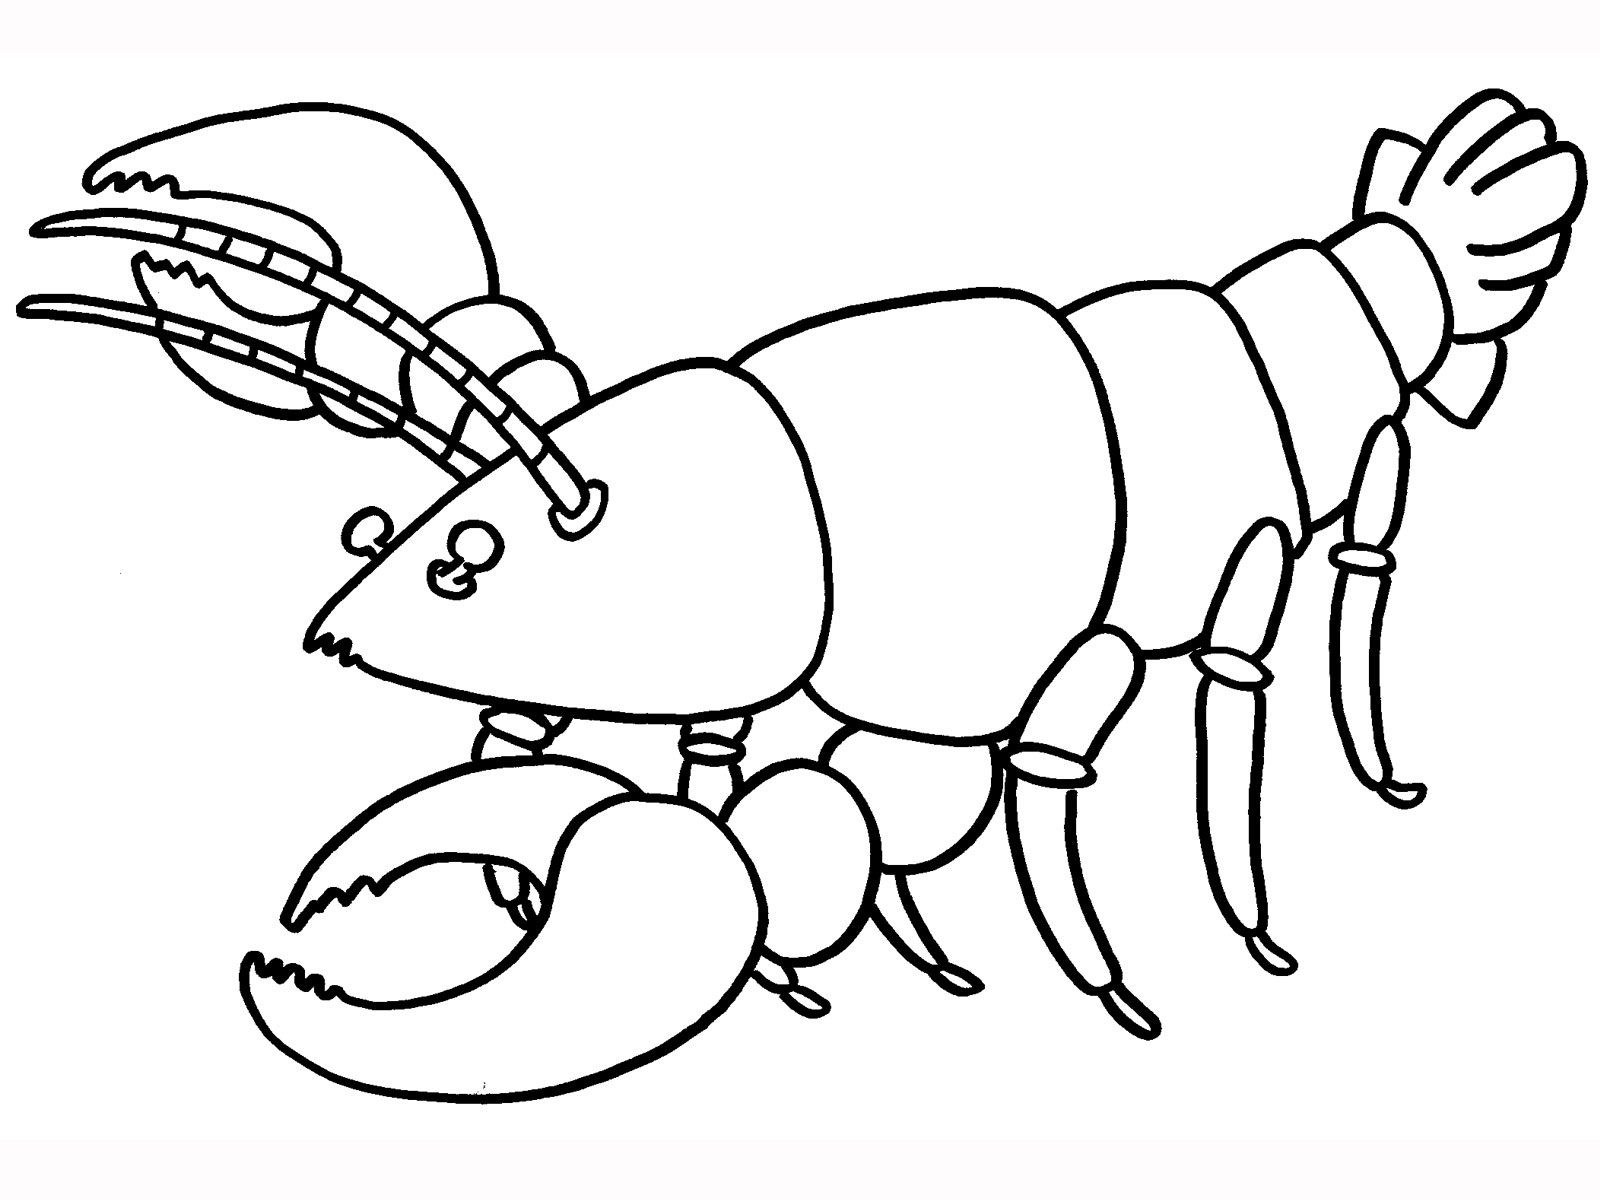 lobster coloring page - lobster